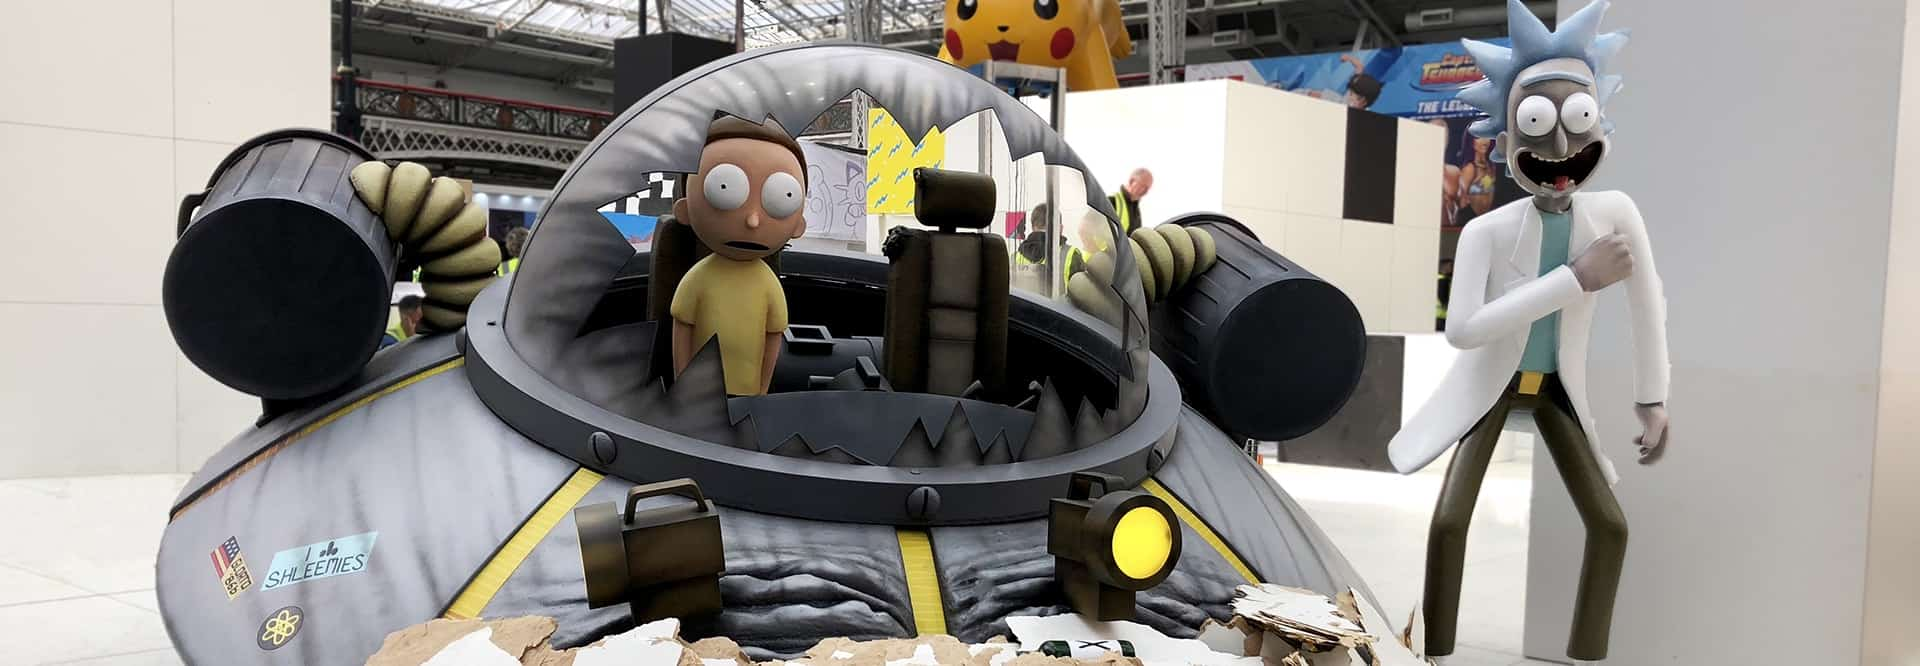 Rick & Morty crashed spaceship Sculpture